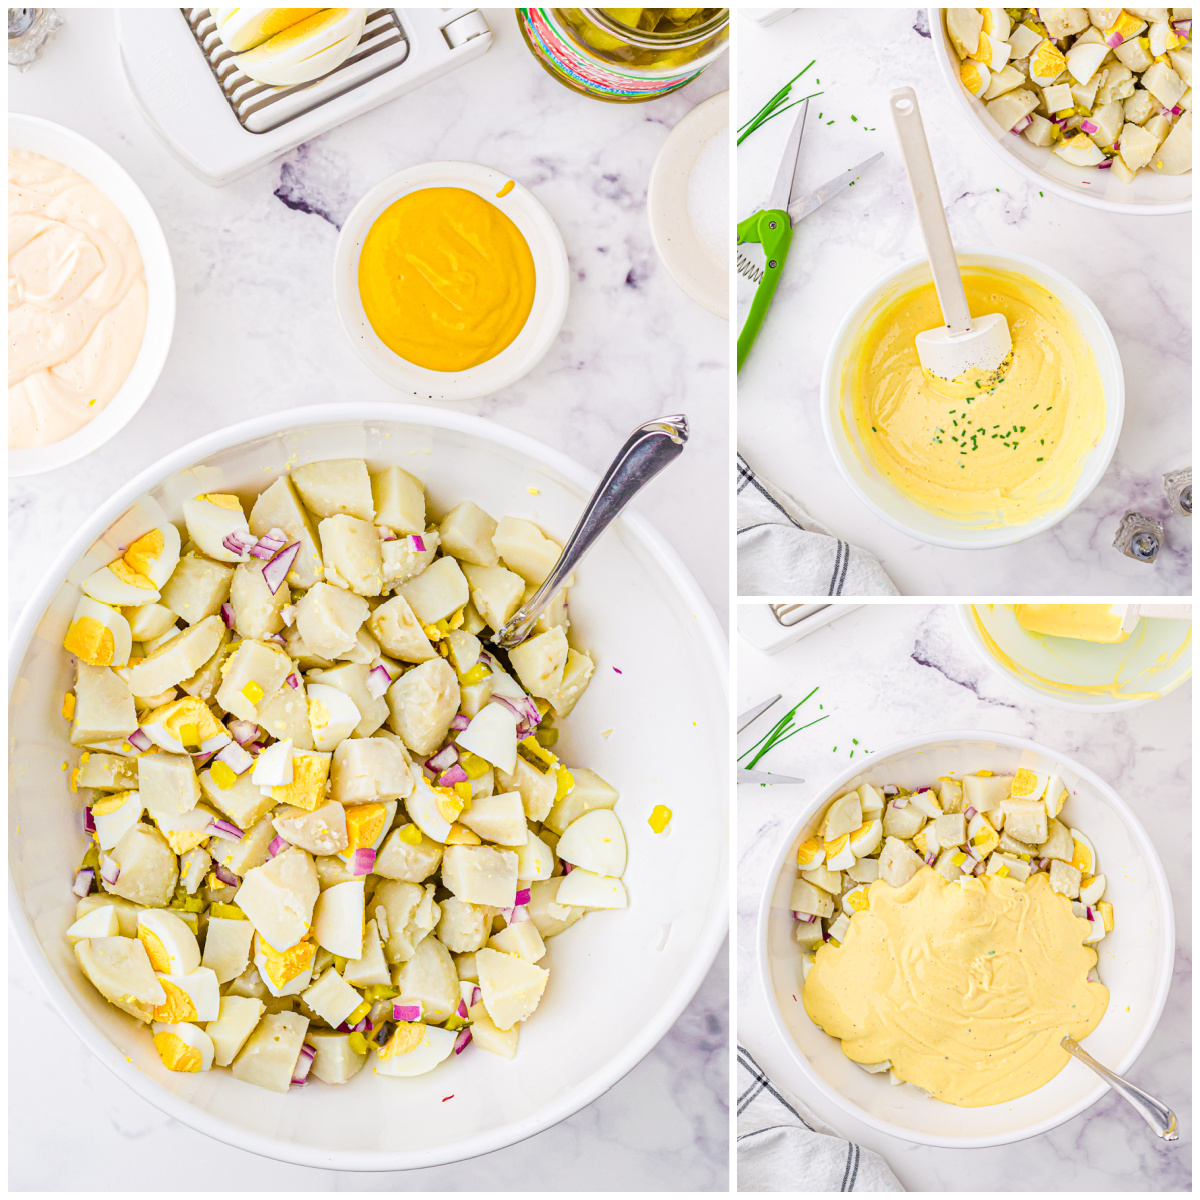 Step by step photos on how to make Classic Potato Salad